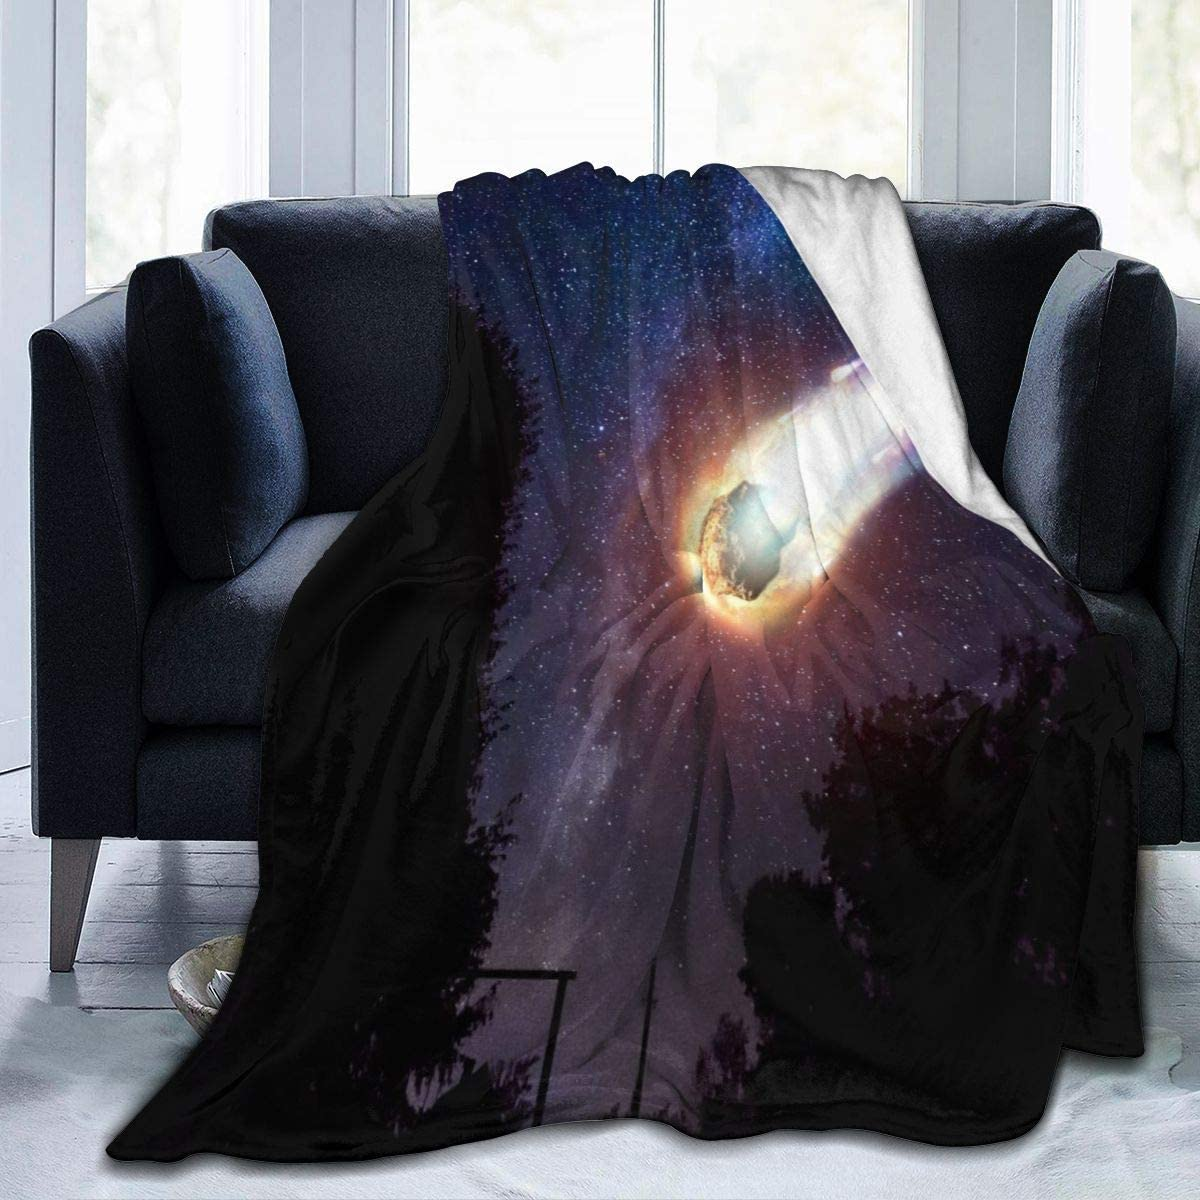 Micro Fleece Plush Soft Baby Blanket Comet Asteroid Galaxy Fluffy Warm Toddler Bed/Crib Blanket Lightweight Flannel Daycare Nap Kids Sleeping Tummy Time Throw Blanket Girls Boy Clearance Kid/Baby